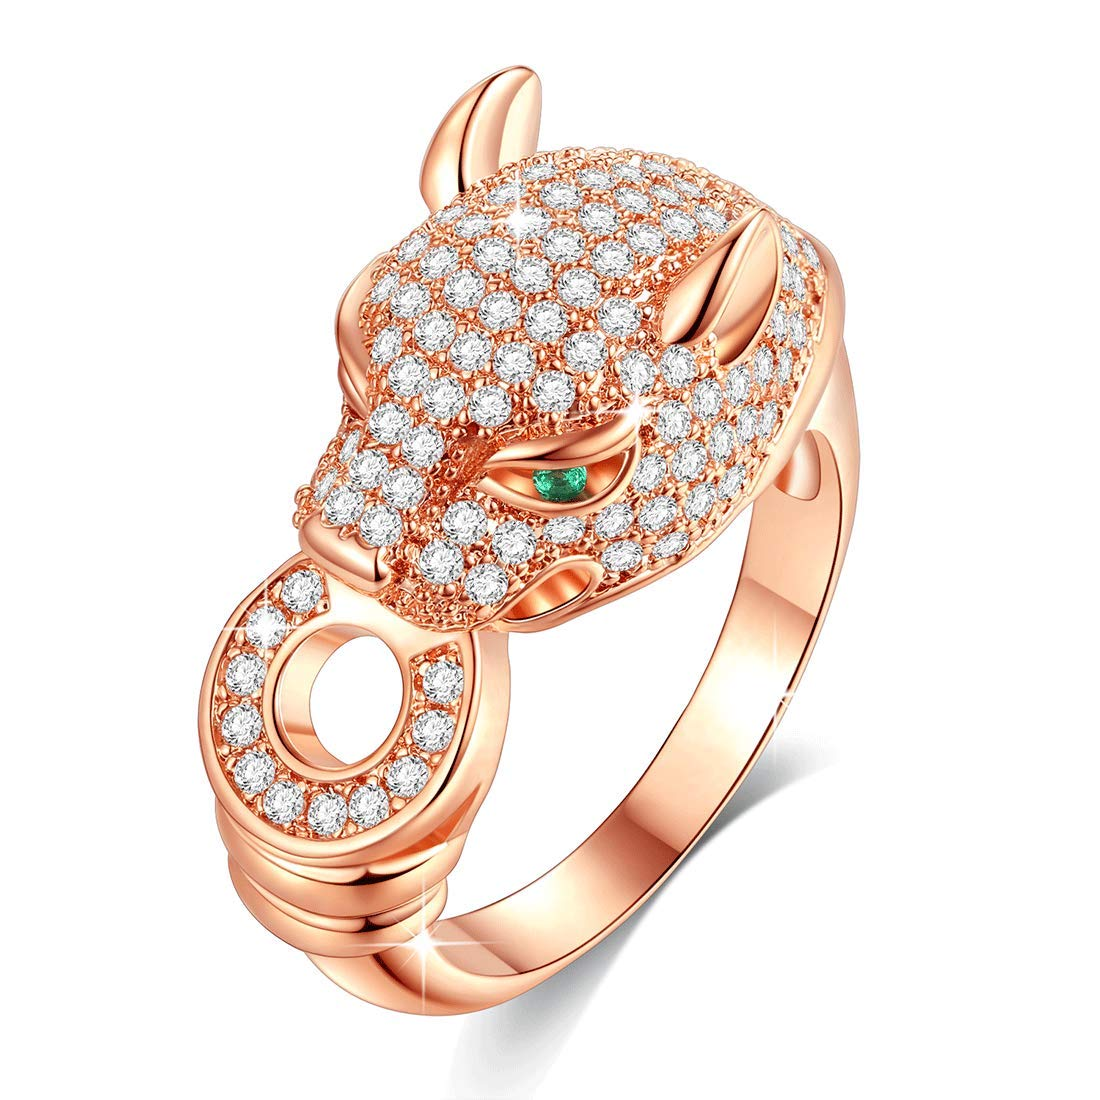 VICISION 2019 3 Color Statement Panther Ring Gold Plated 5A Cubic Zirconia for Women Fine Fashion Jewelry Accessories